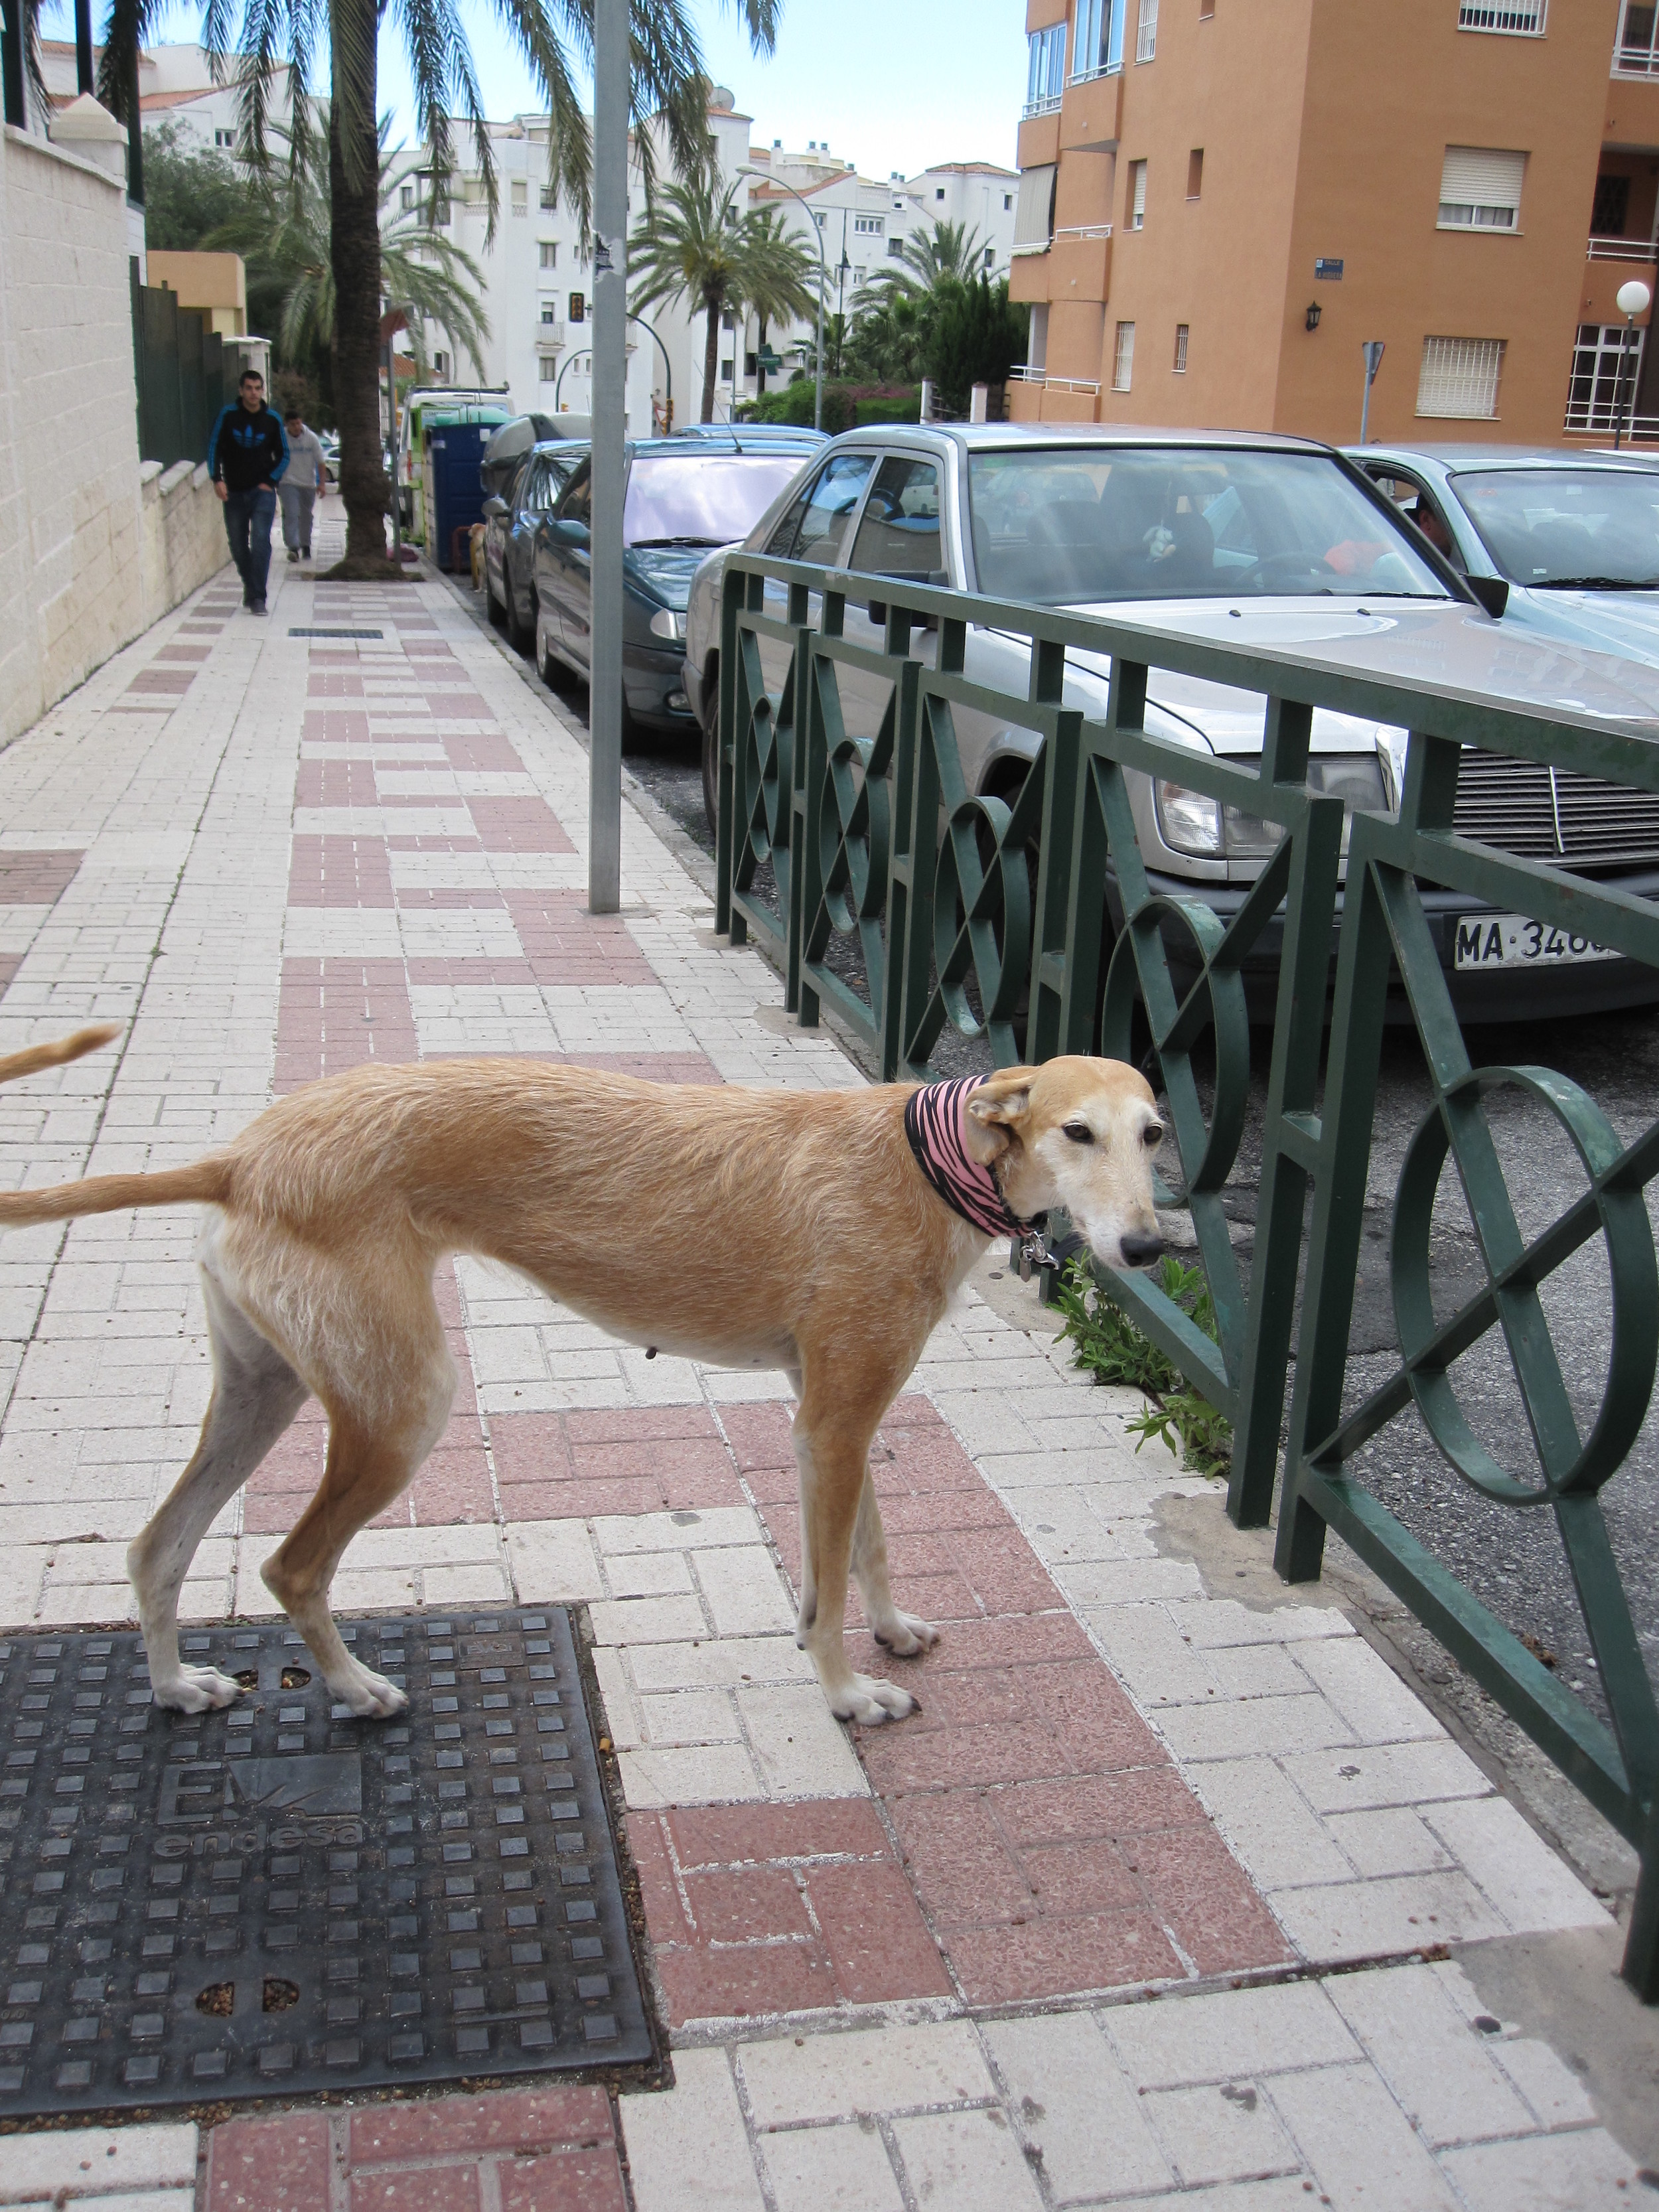 A galgo left tied to a rail waiting for owner...my heart skipped a beat.